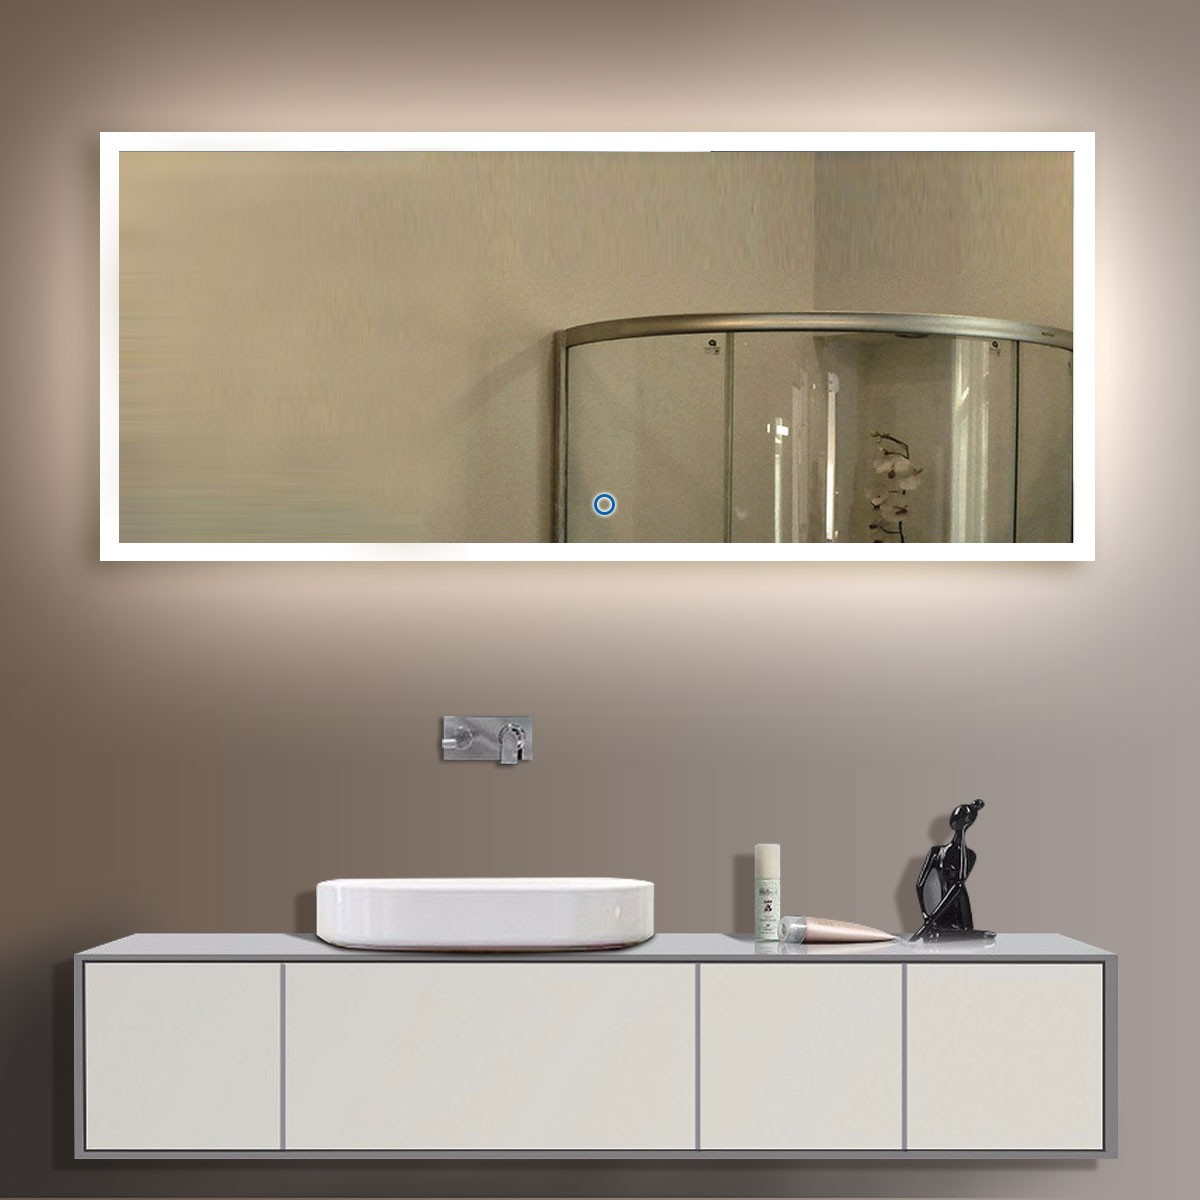 84 x 40 In Horizontal LED Bathroom Mirror with Touch Button (DK-OD-N031-A)